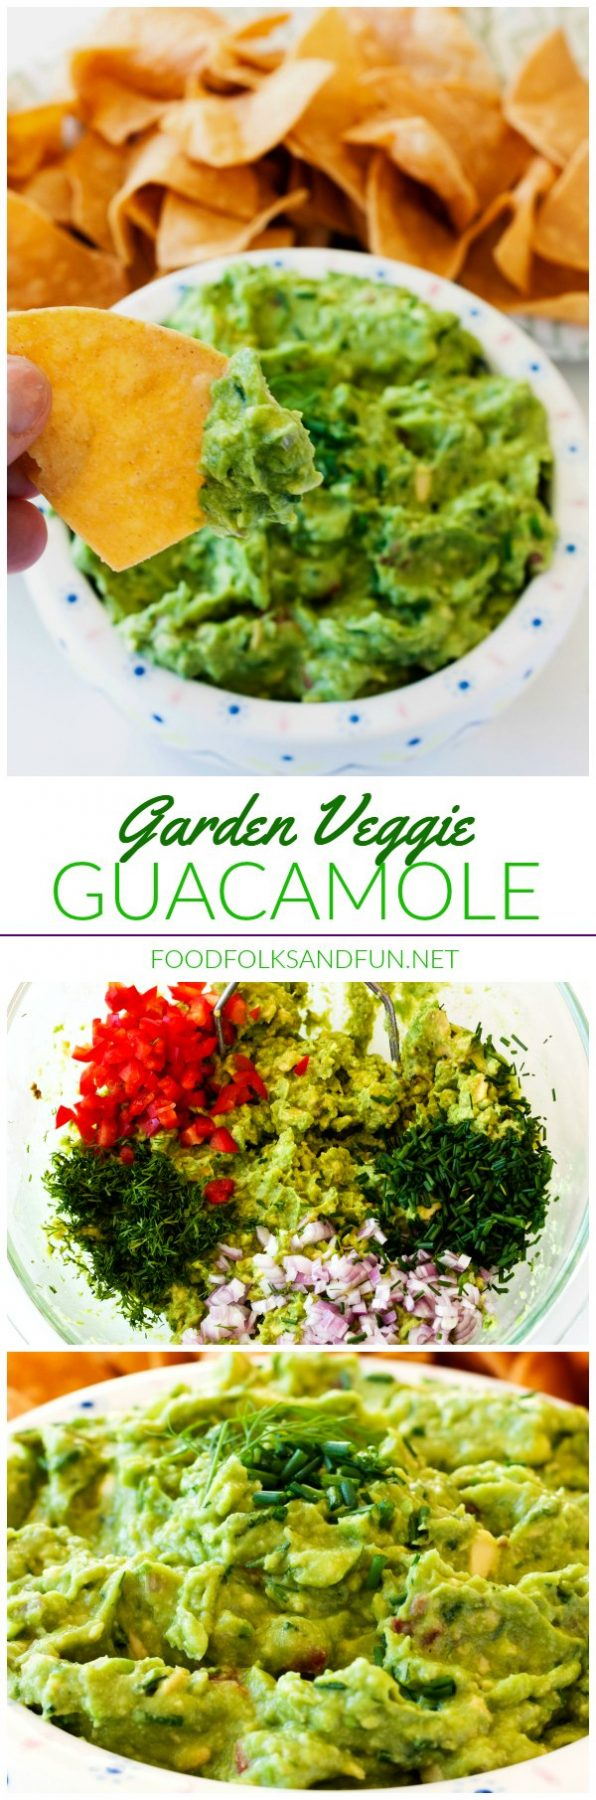 A collage of Garden Veggie Guacamole with text overlay for Pinterest